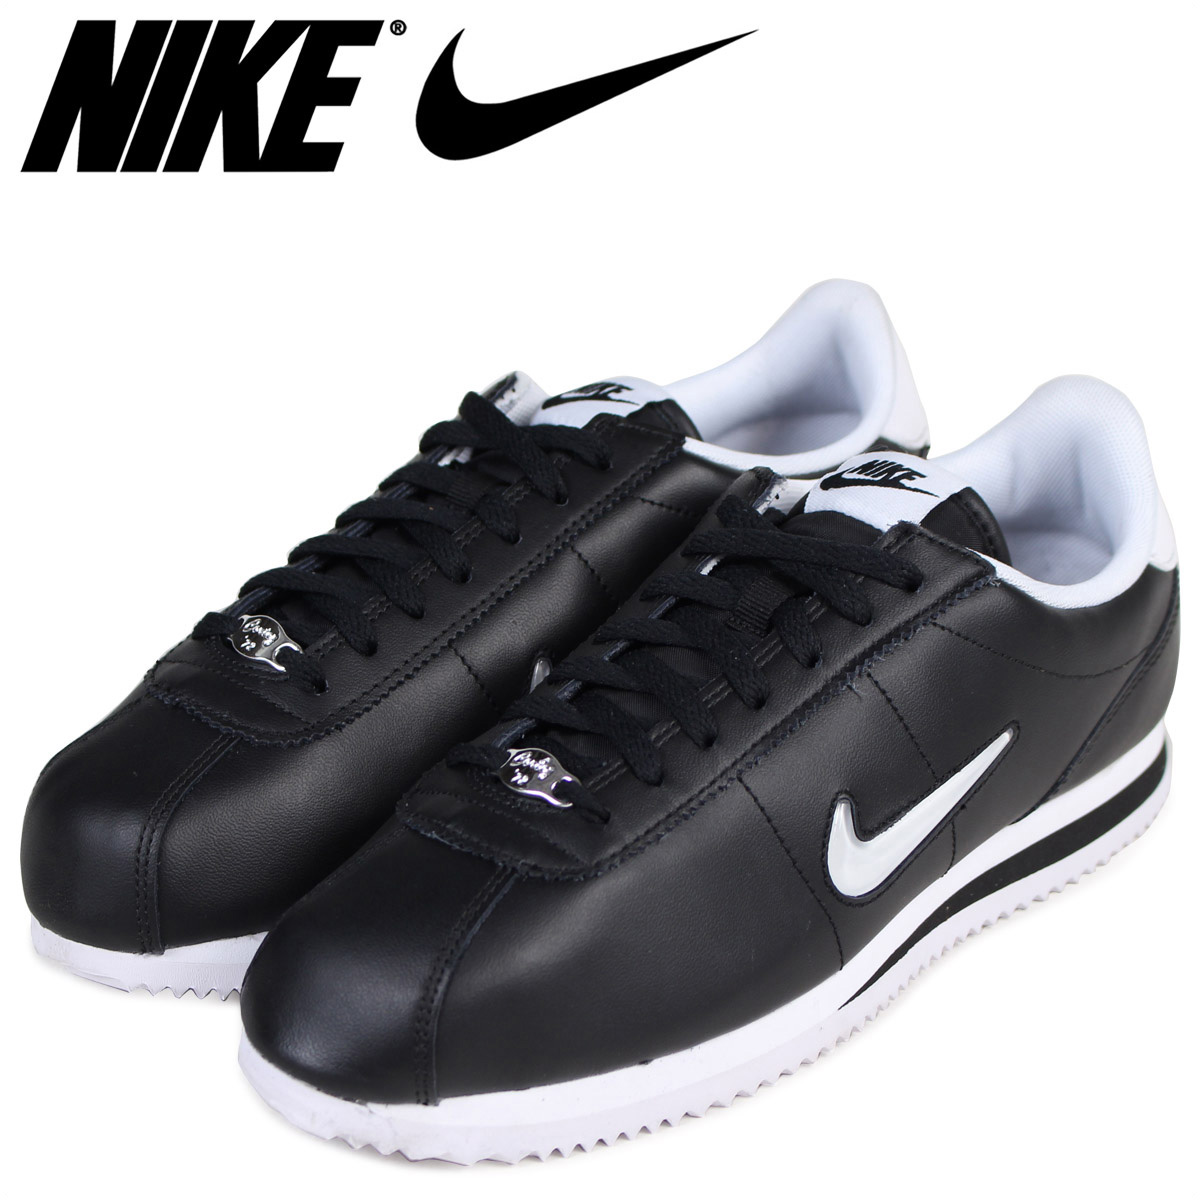 sports shoes 8c65f bdc51 Sugar Online Shop  NIKE ナイキコルテッツスニーカー CORTEZ BASIC JEWEL 833,238-002 men s  shoes black  load planned Shinnyu load in reservation product 10 13 ...